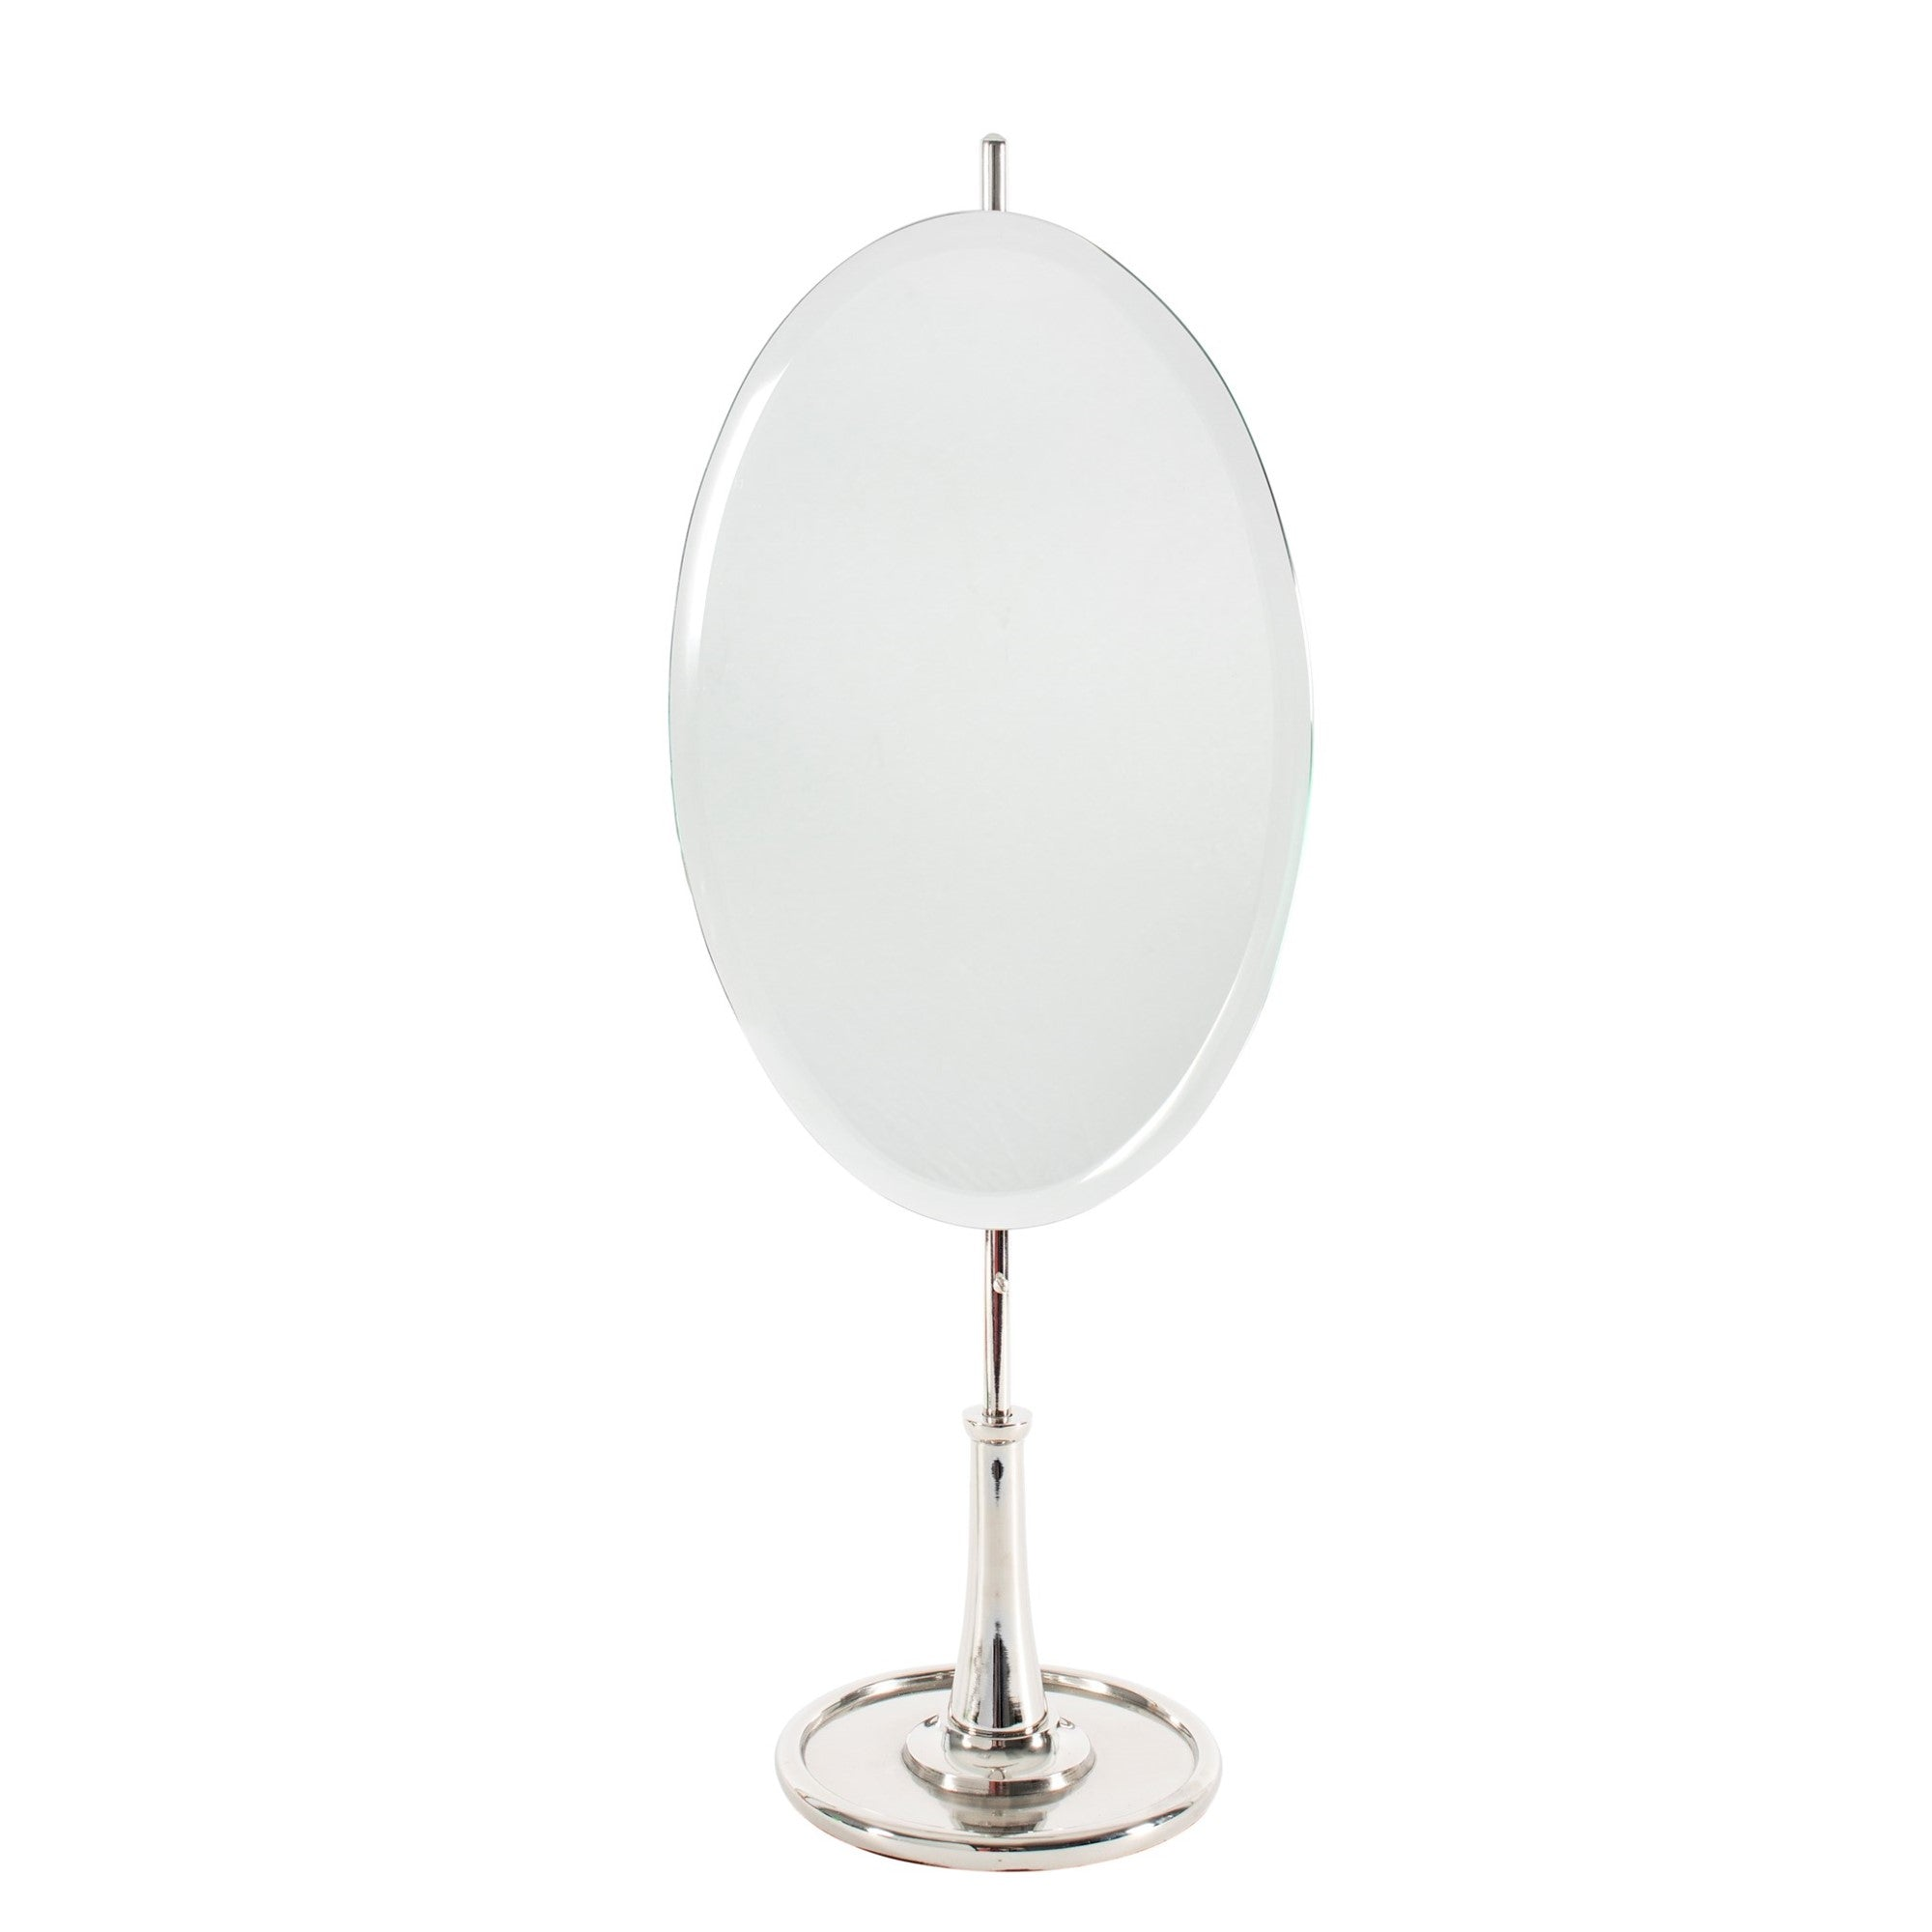 Nickel Oval Table Mirror with Stand  - Putti Fine Furnishings Canada